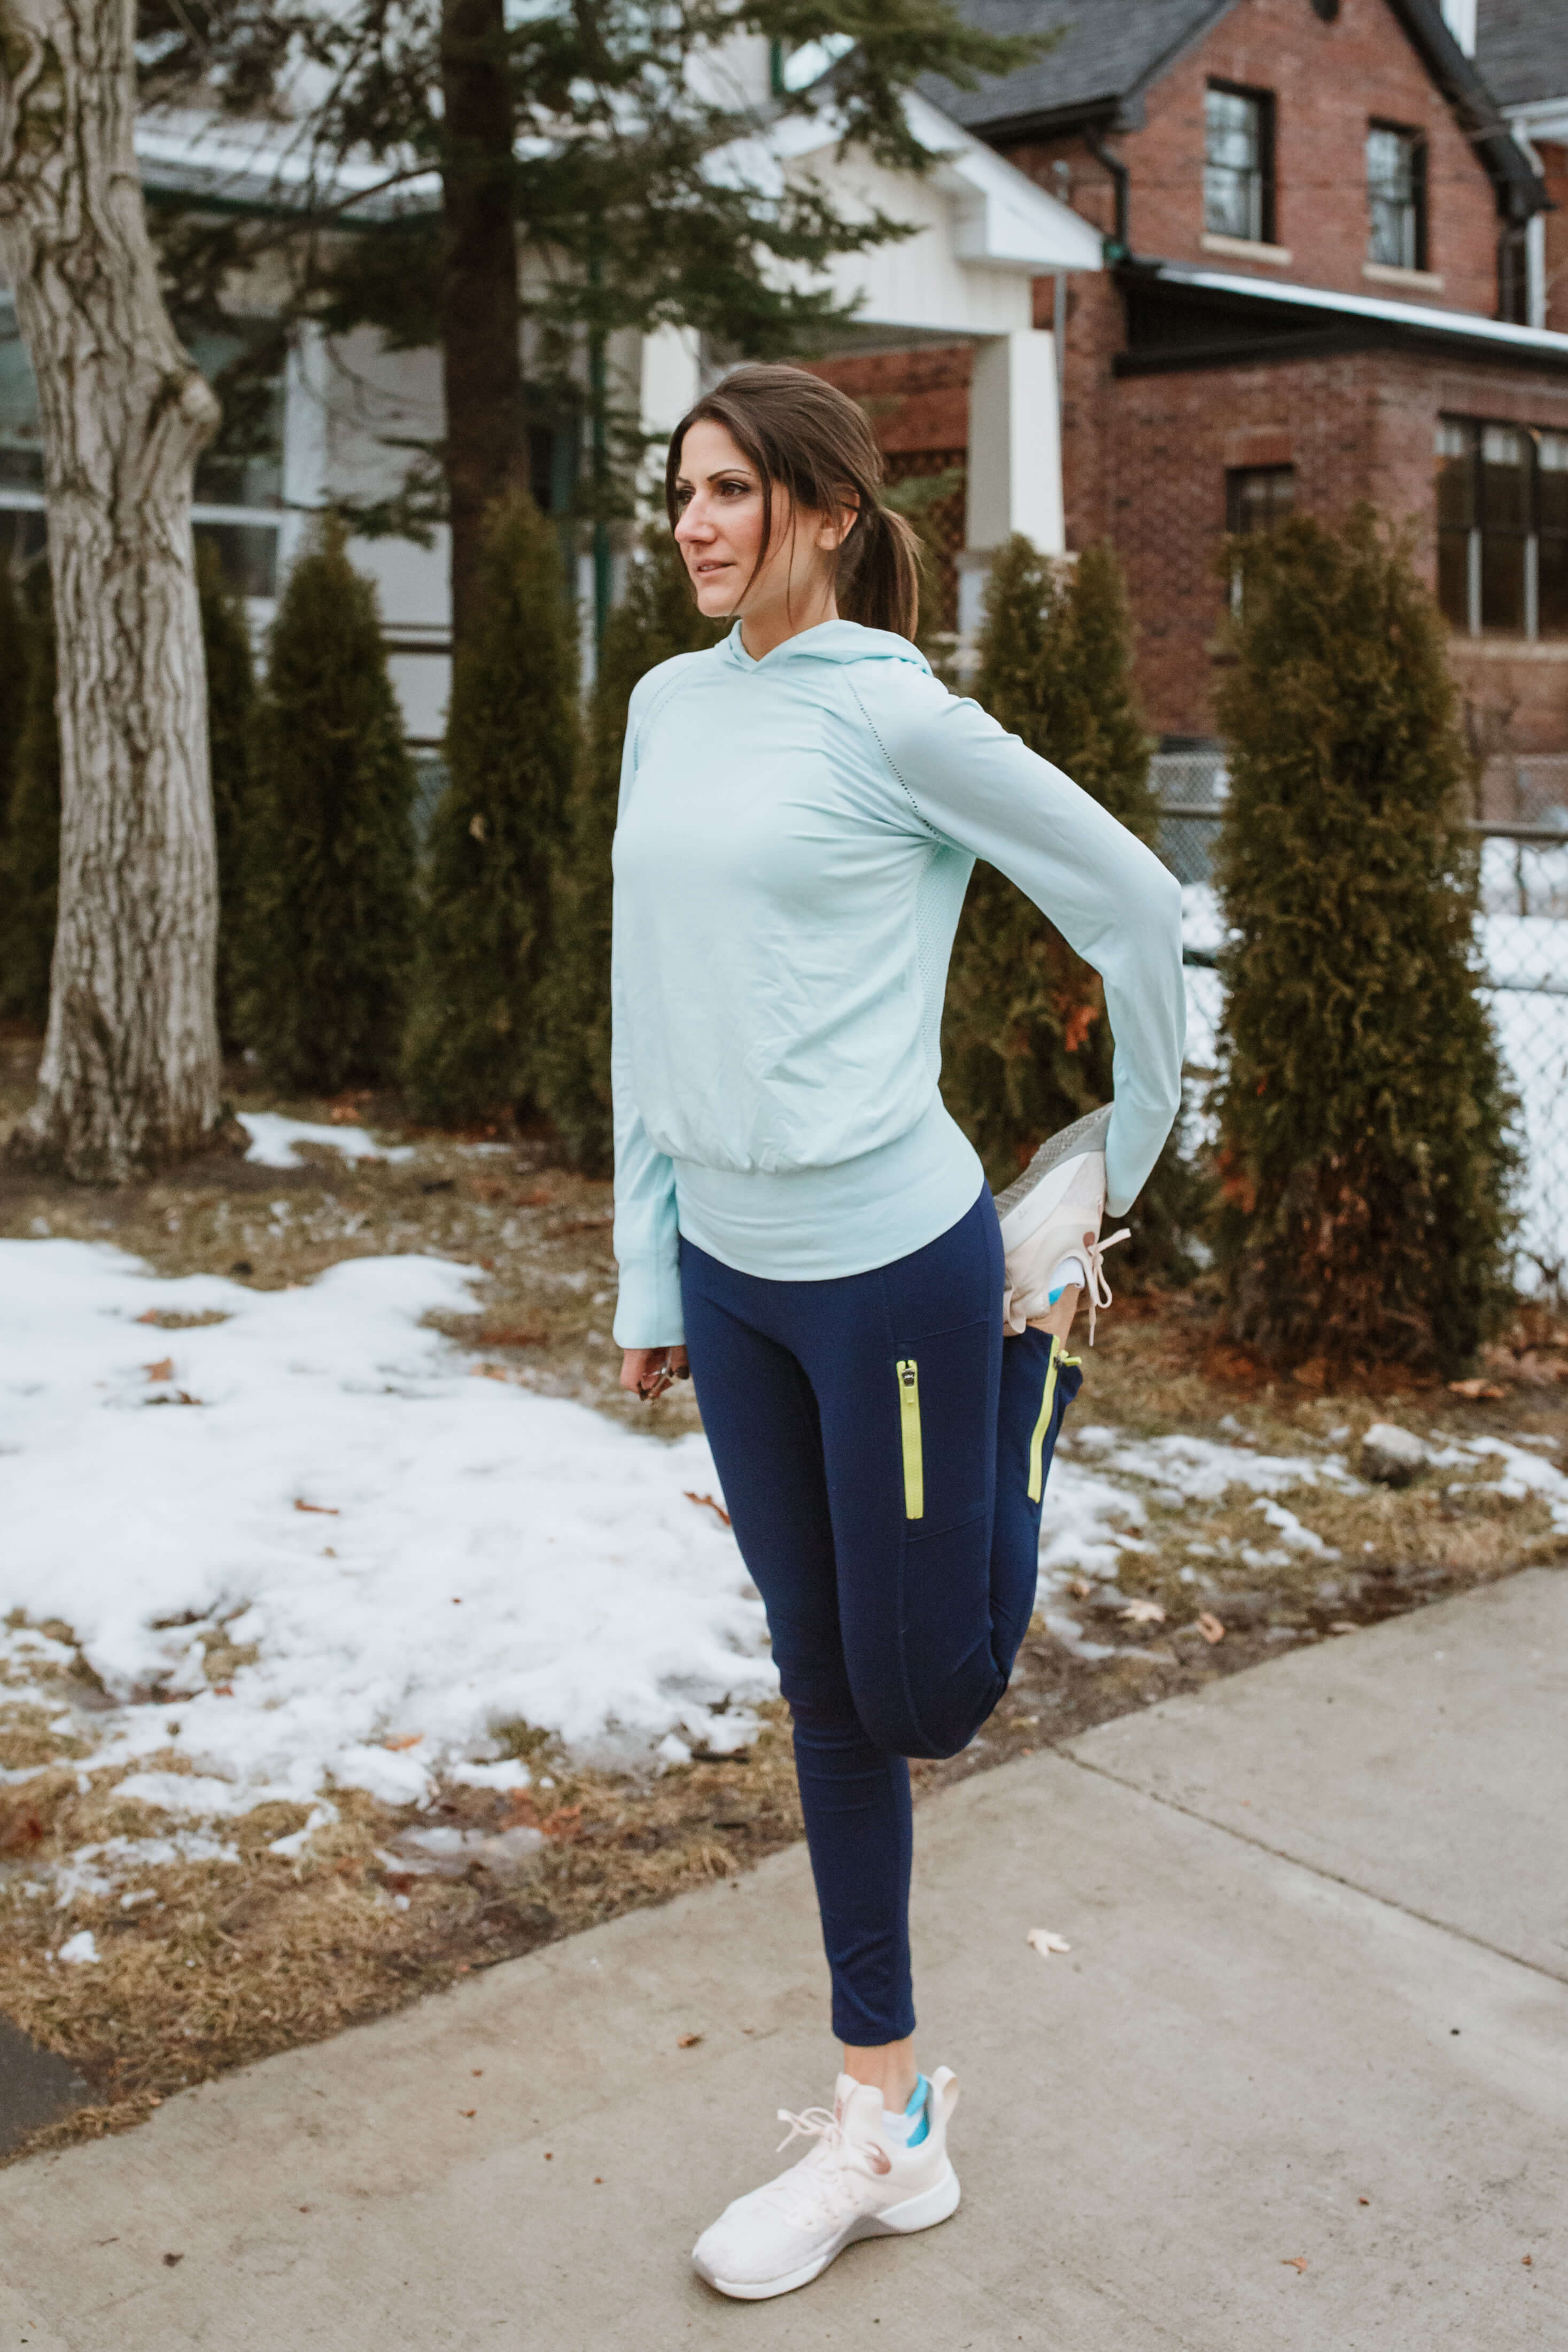 MellyFit Nutrition womon ni a blue sweater and navy blue jogging pants doing a left leg stretch